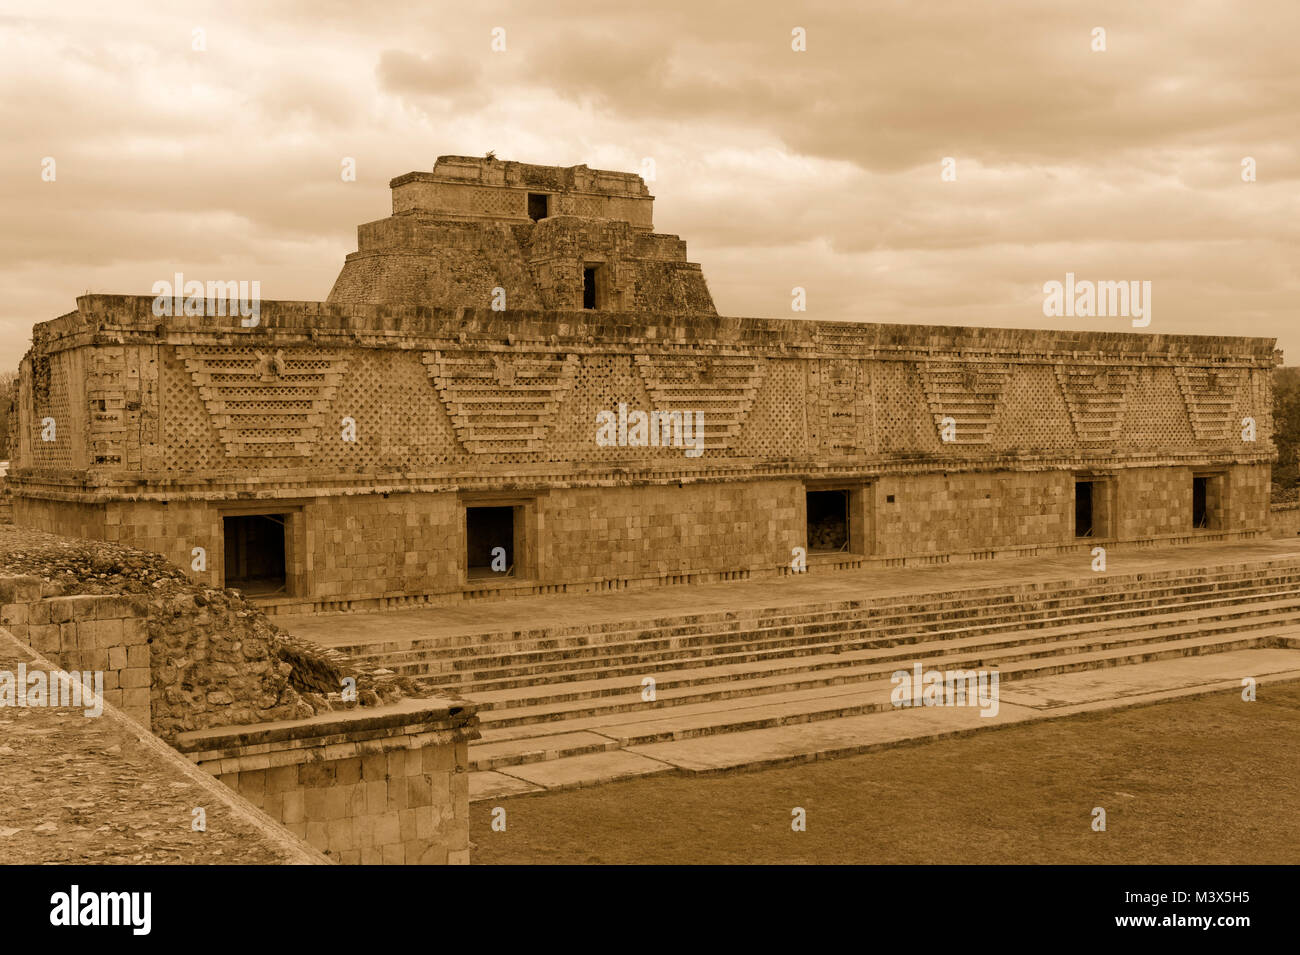 Sepia tone east building of the Nunnery Quadrangle with Pyramid of the Magician at the Mayan ruins of  Uxmal, Yucatan, - Stock Image